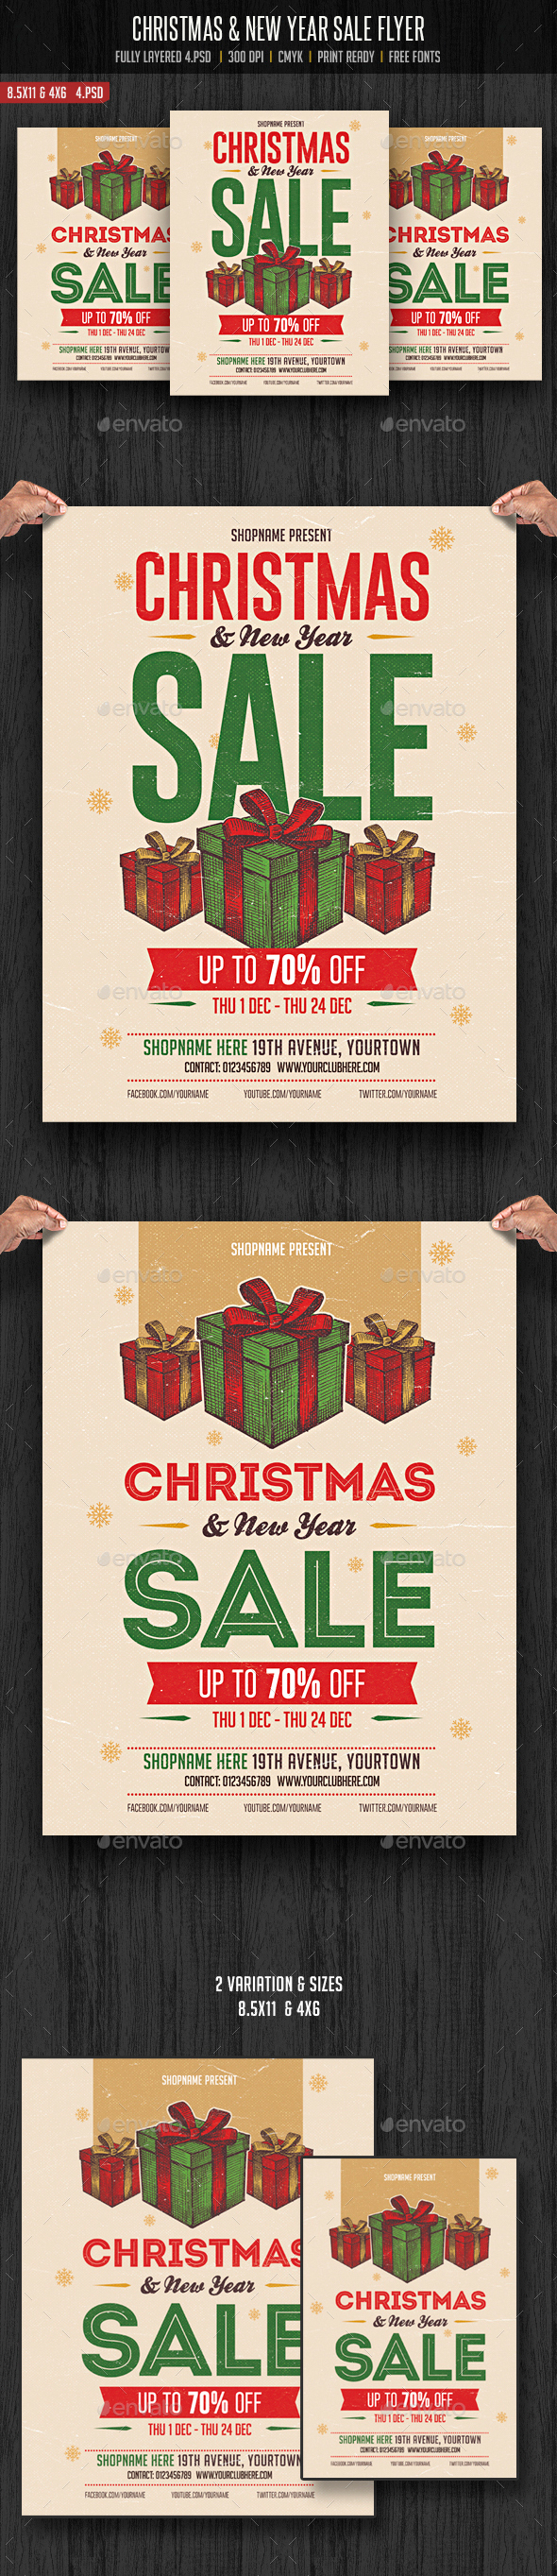 Christmas & New Year Sale Flyer - Flyers Print Templates